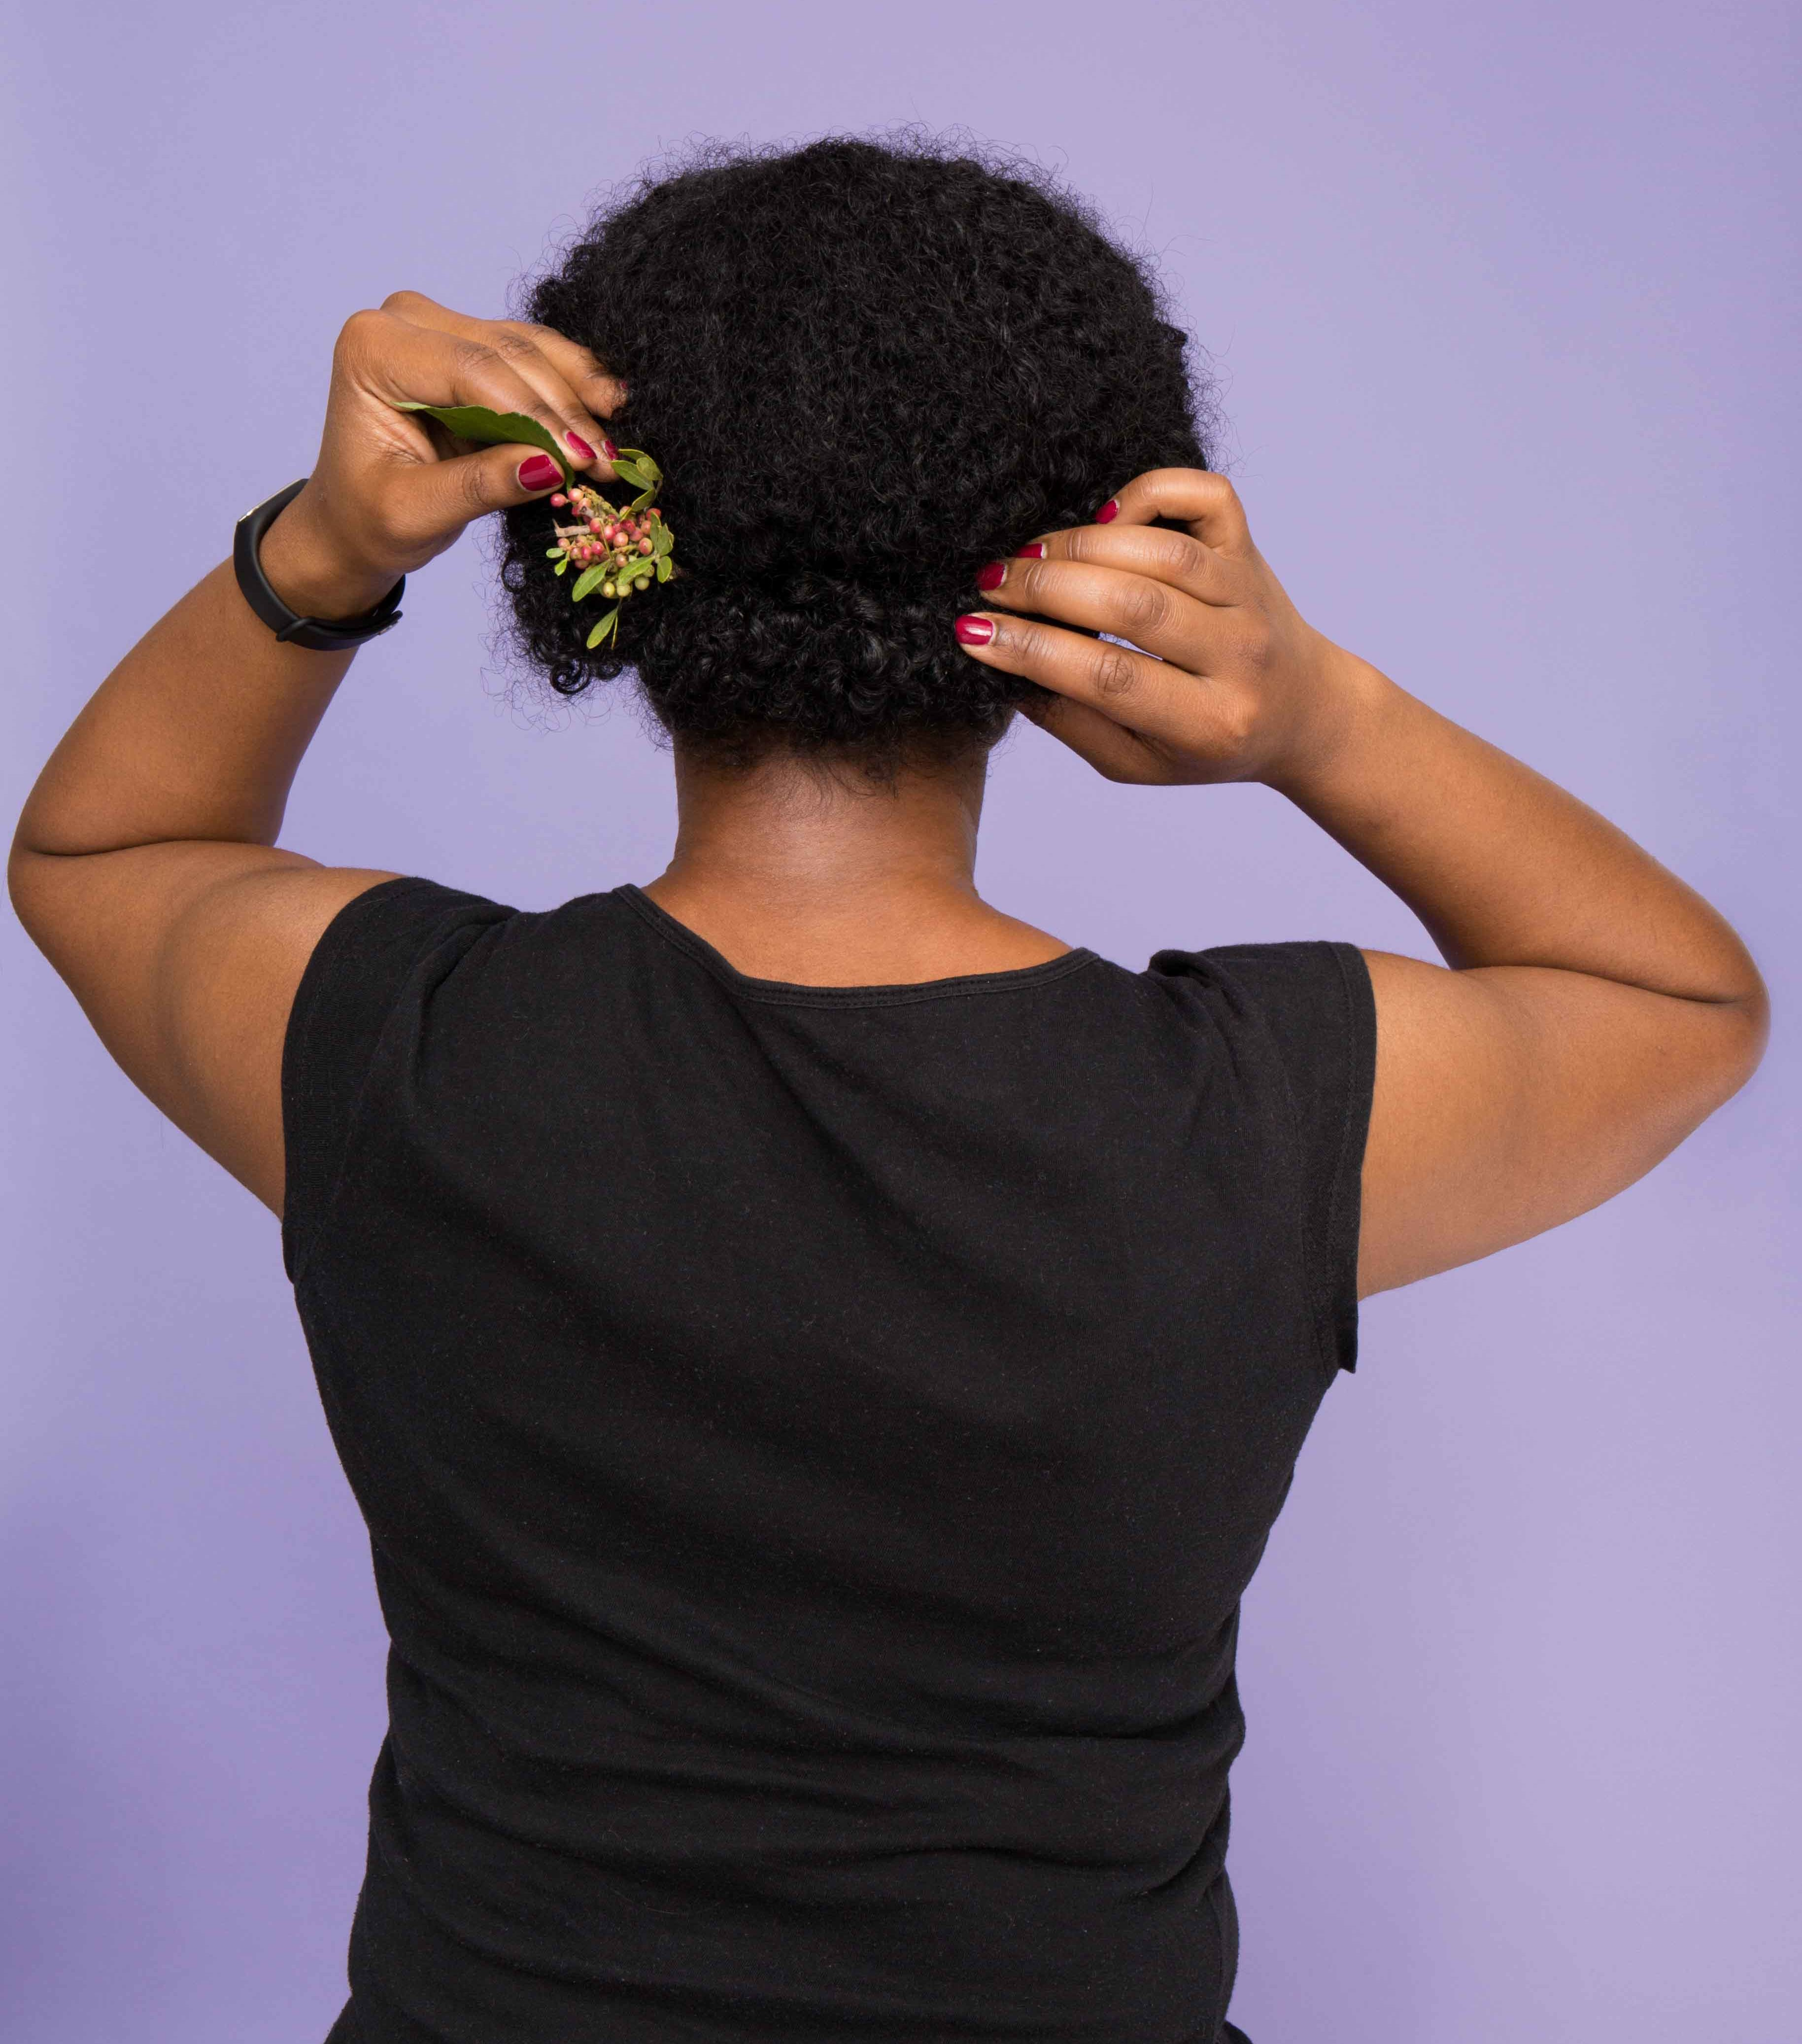 chignon hair: All Things Hair - IMAGE - afro black hair party hairstyle Christmas festive updo